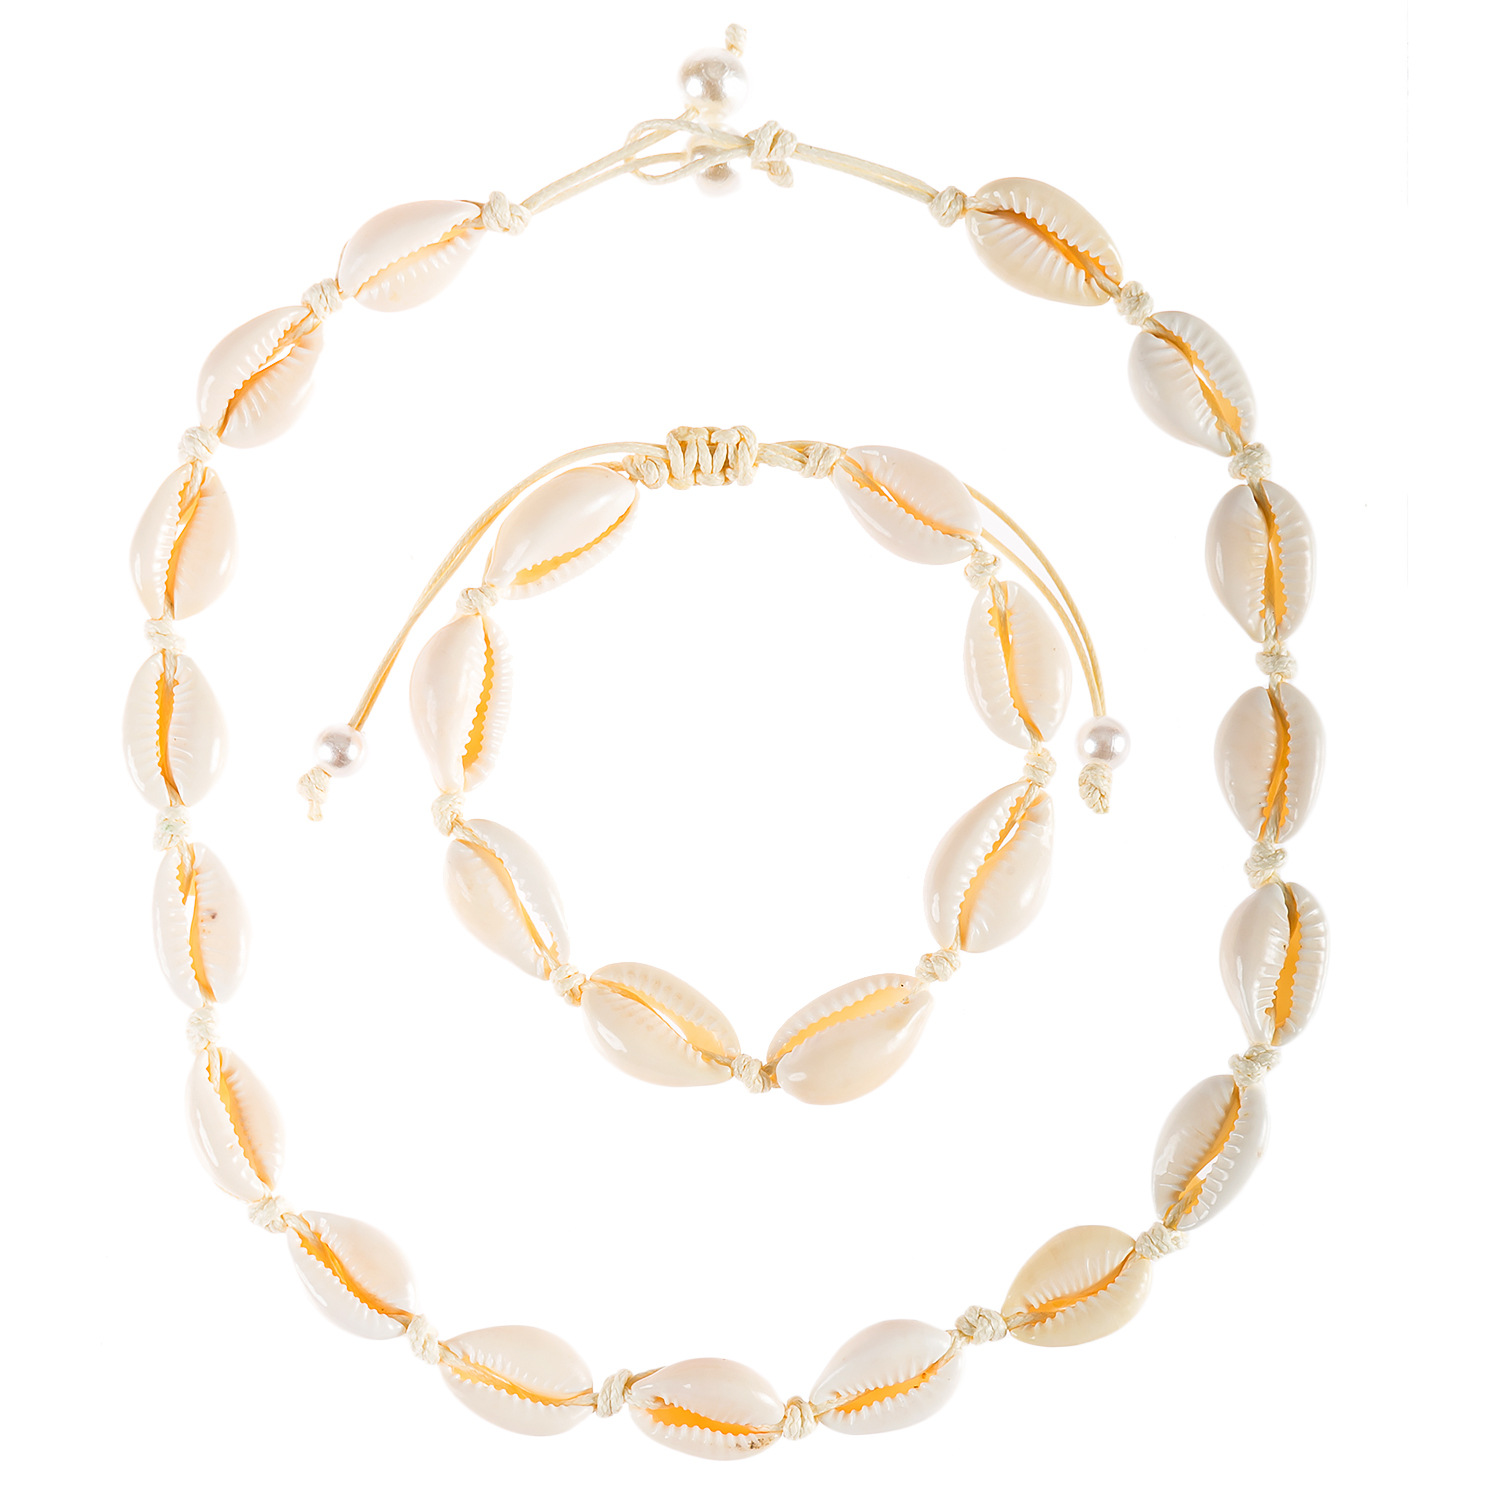 Summer Ocean Wind Accessories Natural Shell Bracelet Necklace Set Popular Beach Accessories Necklace Amazon Hot Selling